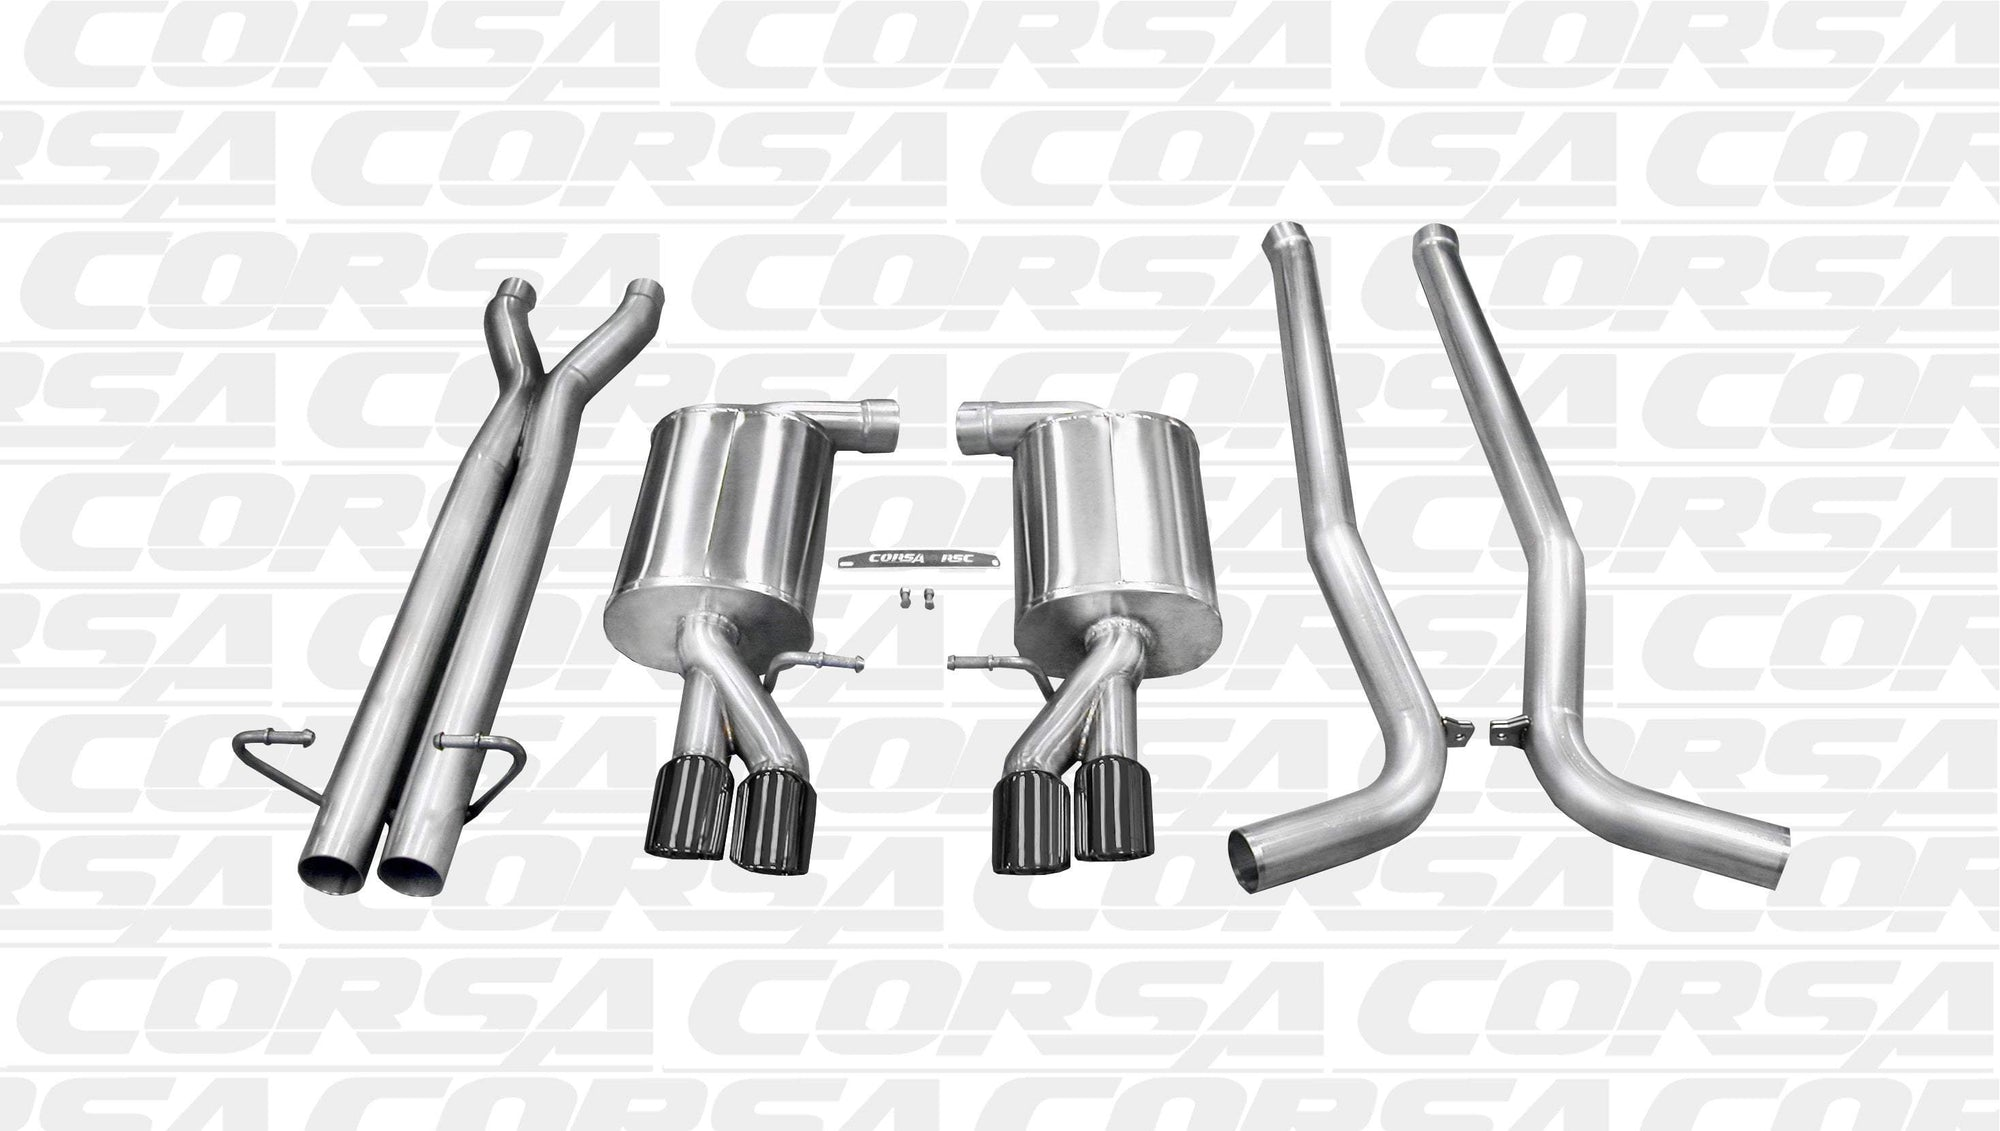 "CORSA PERFORMANCE Cat-Back Exhaust Polished / Sport / Dual Rear - Twin 3.0in 2005-2009 Audi S4 B7 4.2L V8, 2.5"" Dual Rear Exit Cat-Back Exhaust System with Twin 3.0"" Tips (14540) Sport Sound Level"